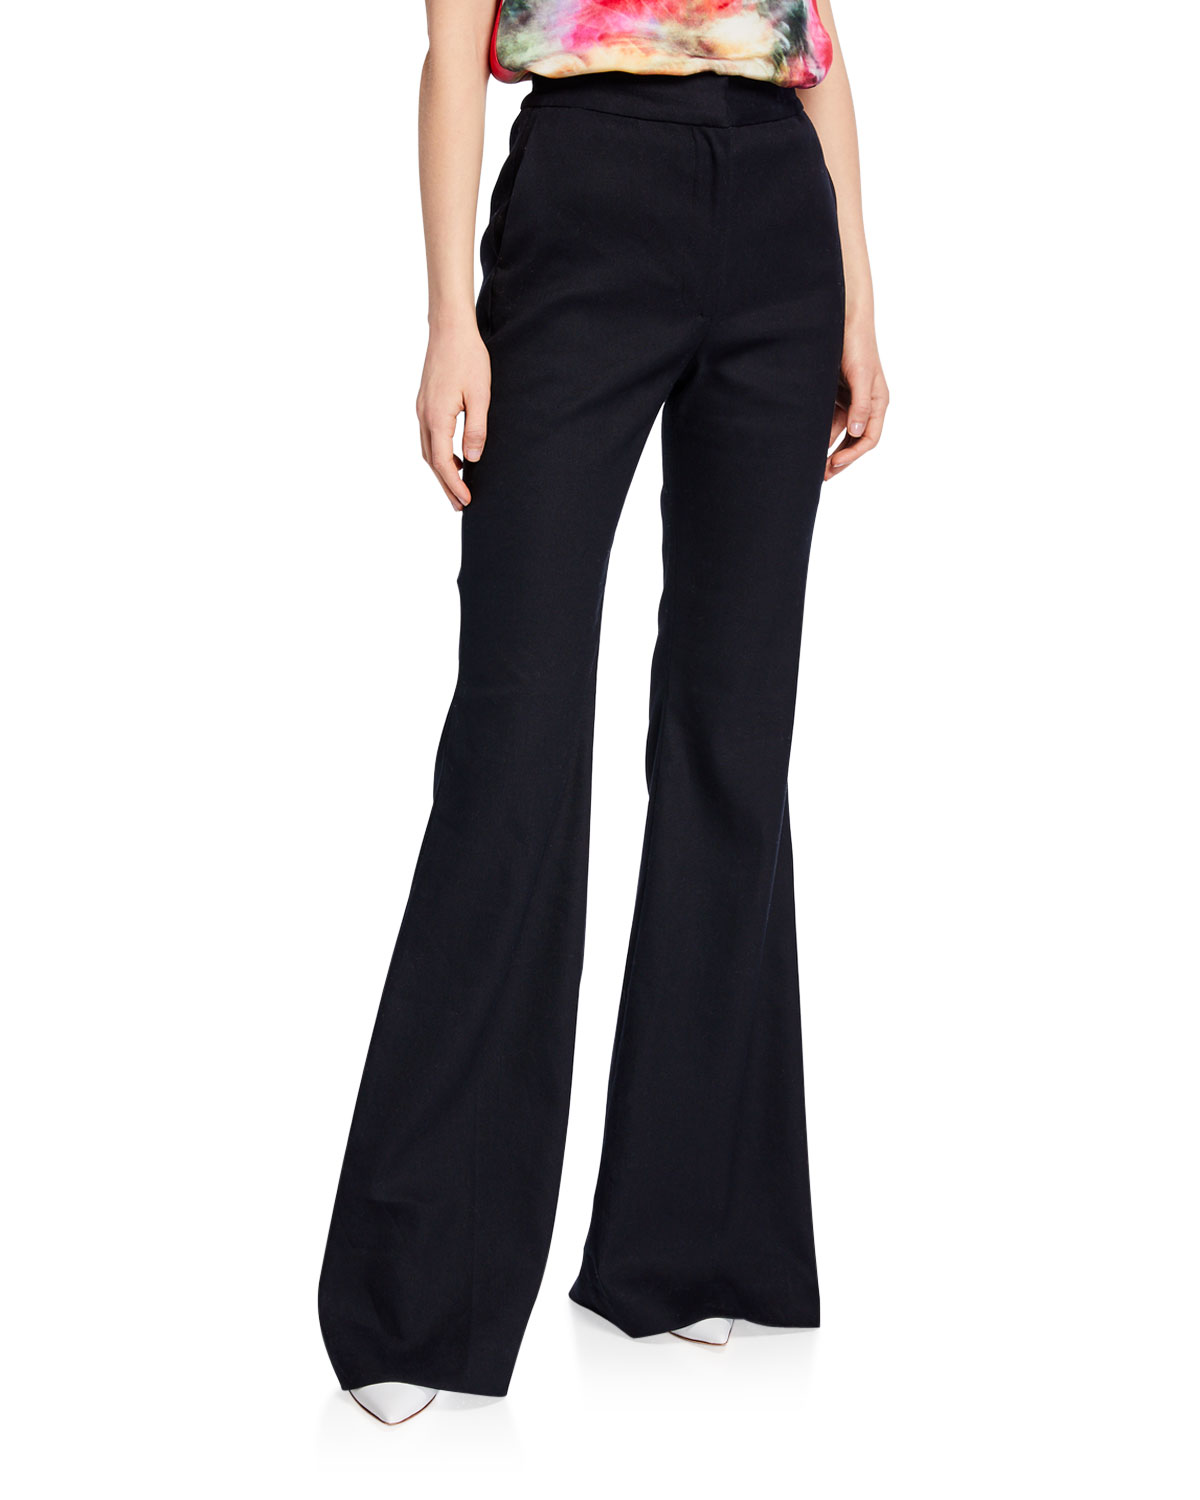 Adam Lippes Pants TEXTURED HIGH-RISE FLARE PANTS